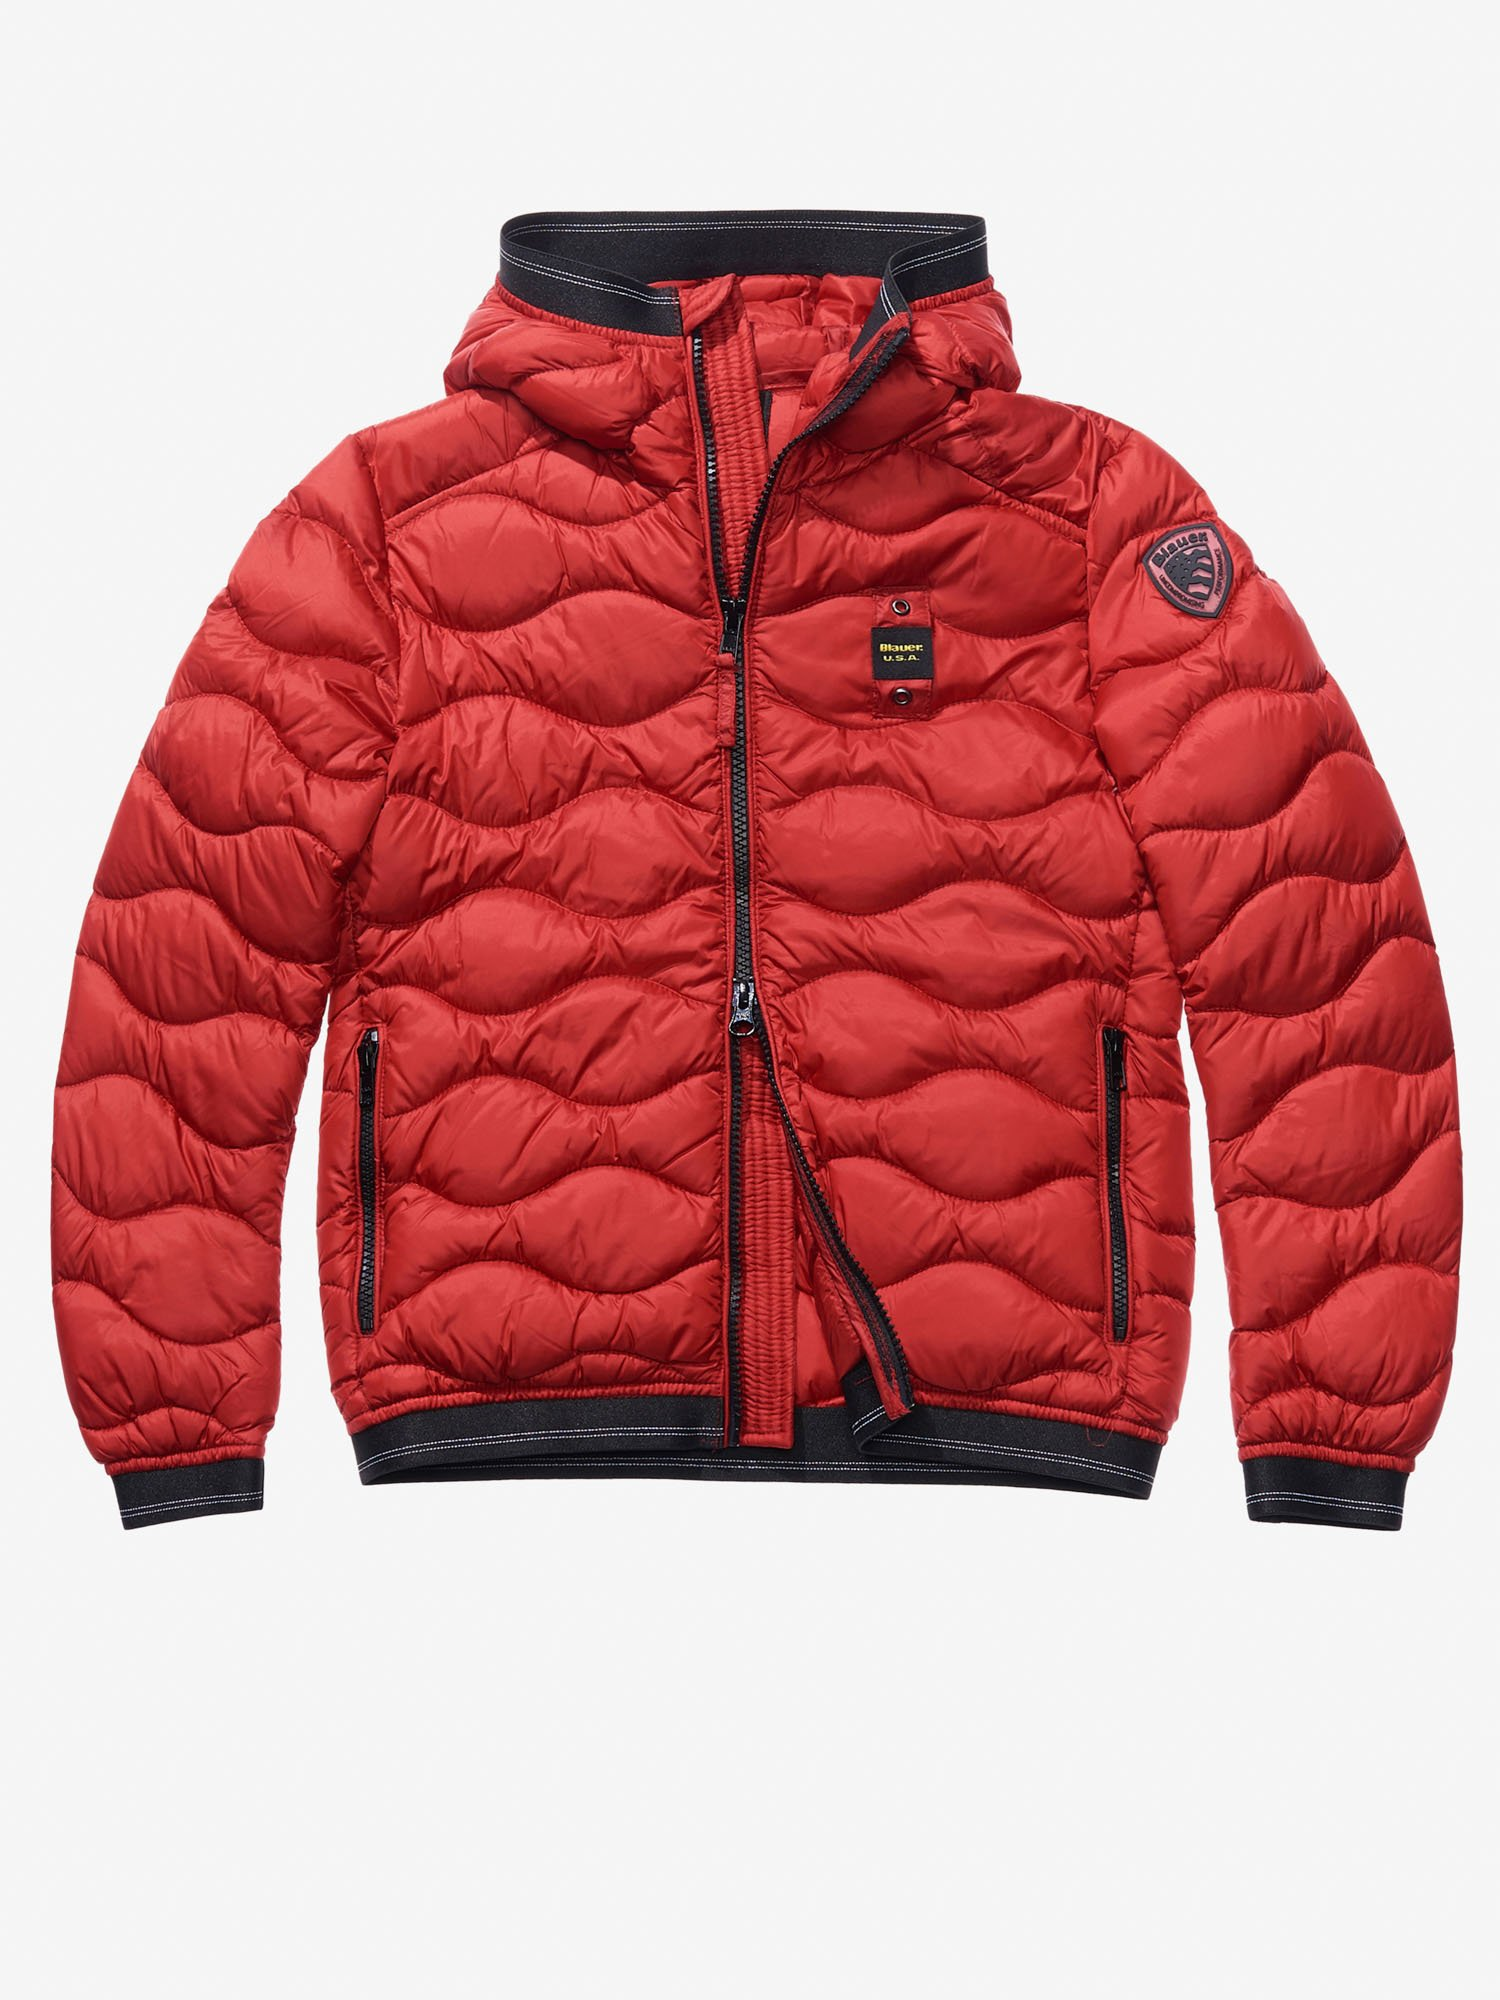 Blauer - ORLANDO WAVE-QUILTED DOWN JACKET WITH HOOD - Red Bloode - Blauer